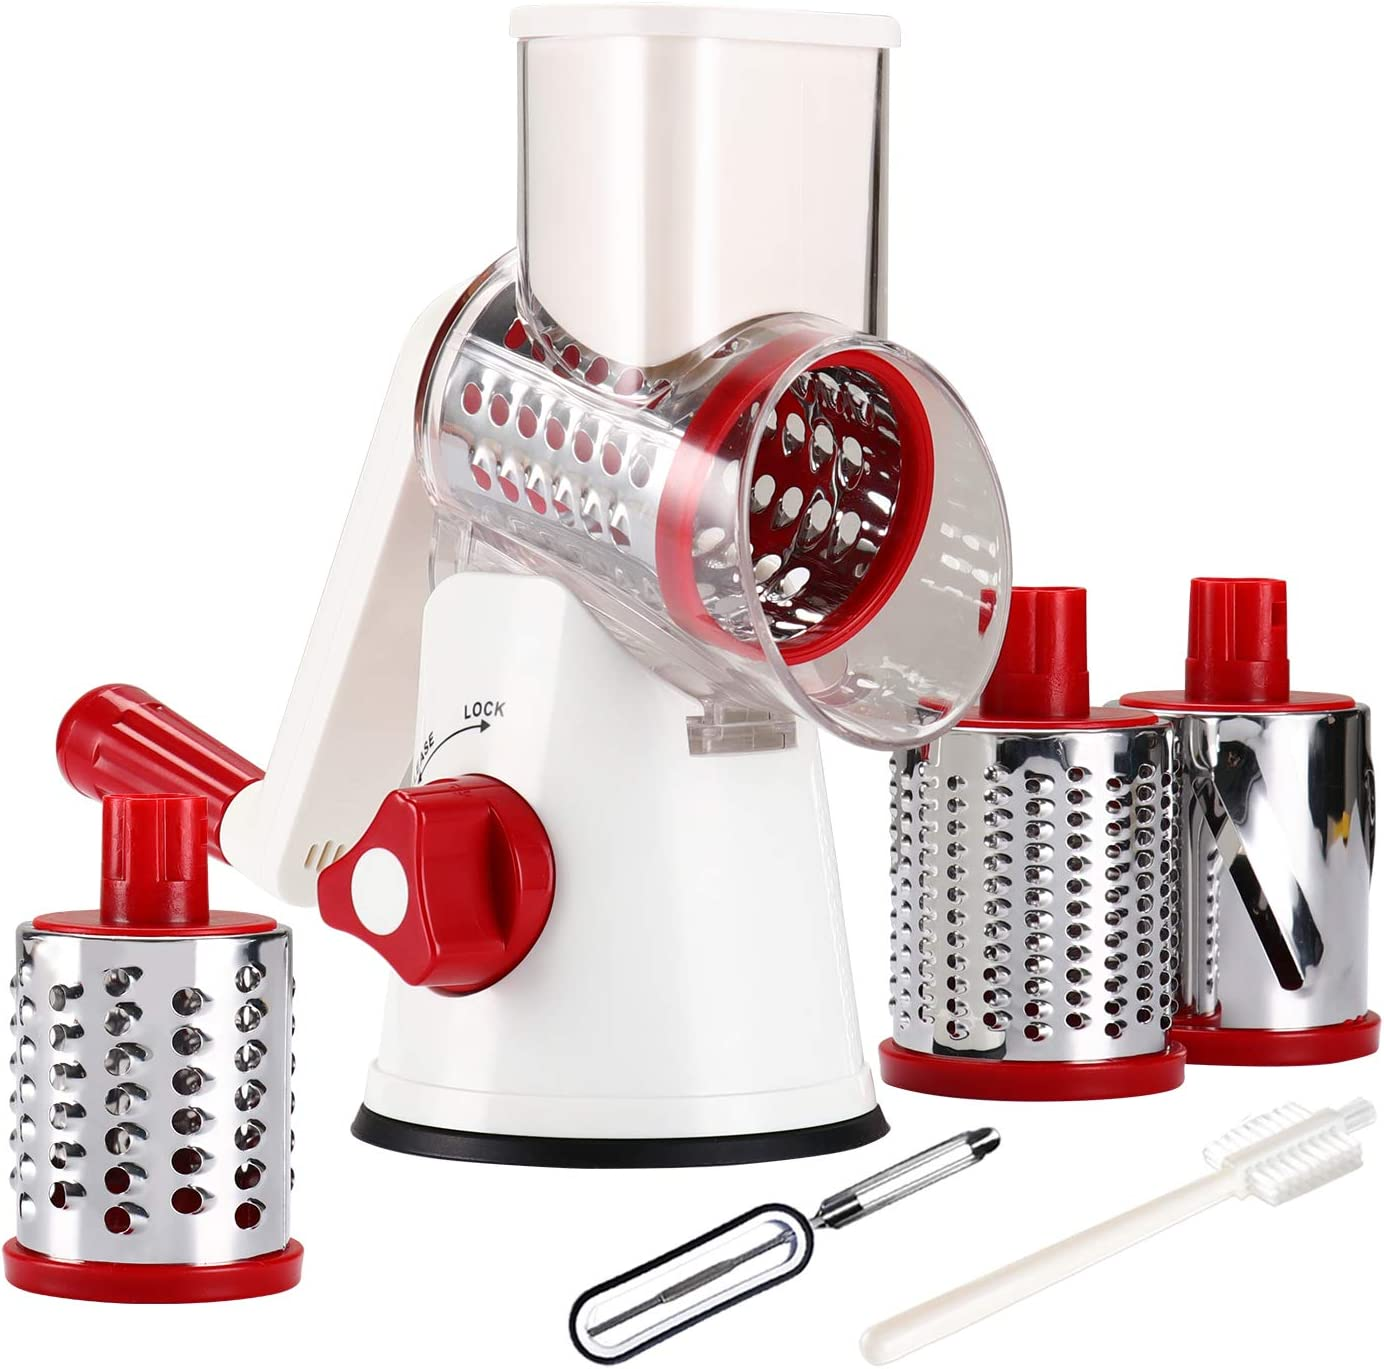 Tevokon Cheese Grinder Rotary Cheese Shredder Multi Blade Rotary Grater Non-slip Nut Slicer Vegetable Shredder Food Preparation Round Mandoline with Peeler